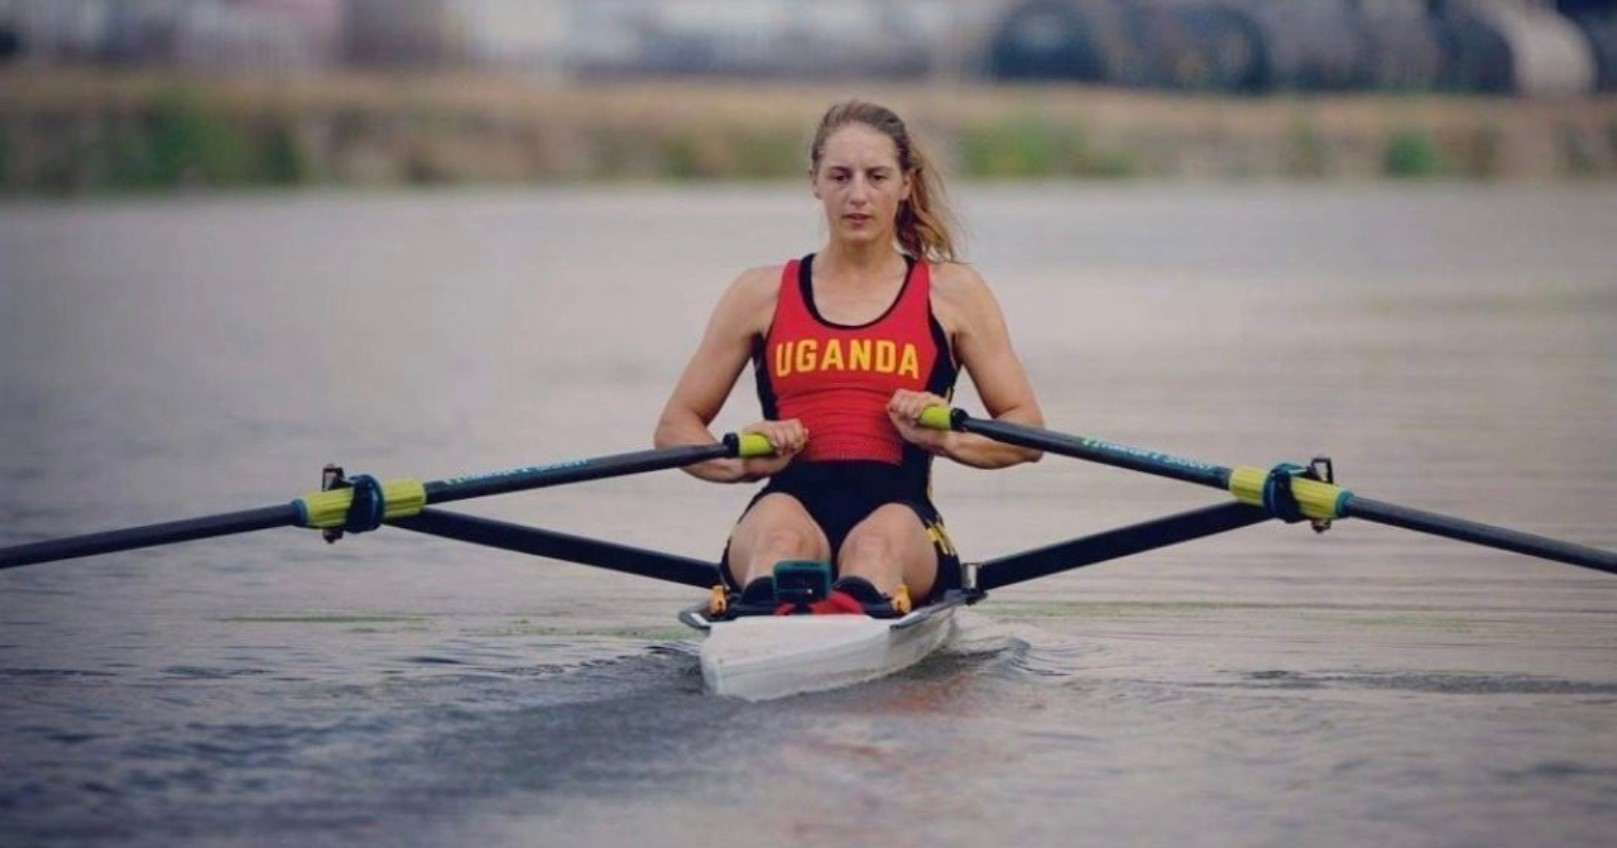 Kathleen Noble Becomes The First Ugandan To Ever Qualify For Rowing At The Olympics In The Single Scull Category. 3